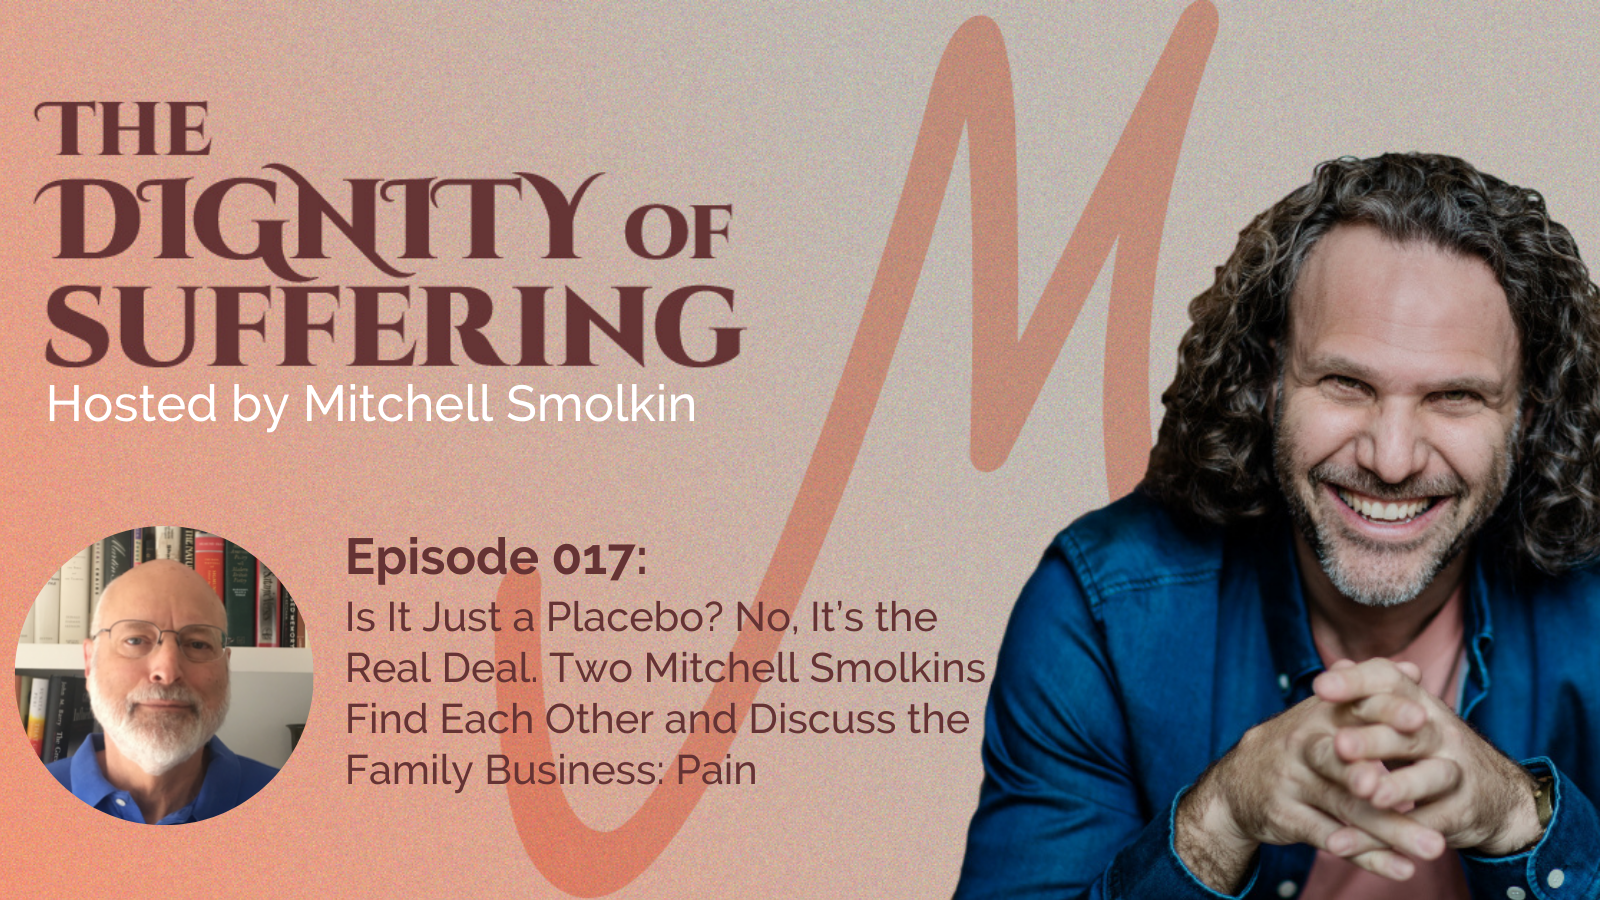 Episode 017: Is It Just a Placebo? No, It's the Real Deal. Two Mitchell Smolkins Find Each Other and Discuss the Family Business: Pain